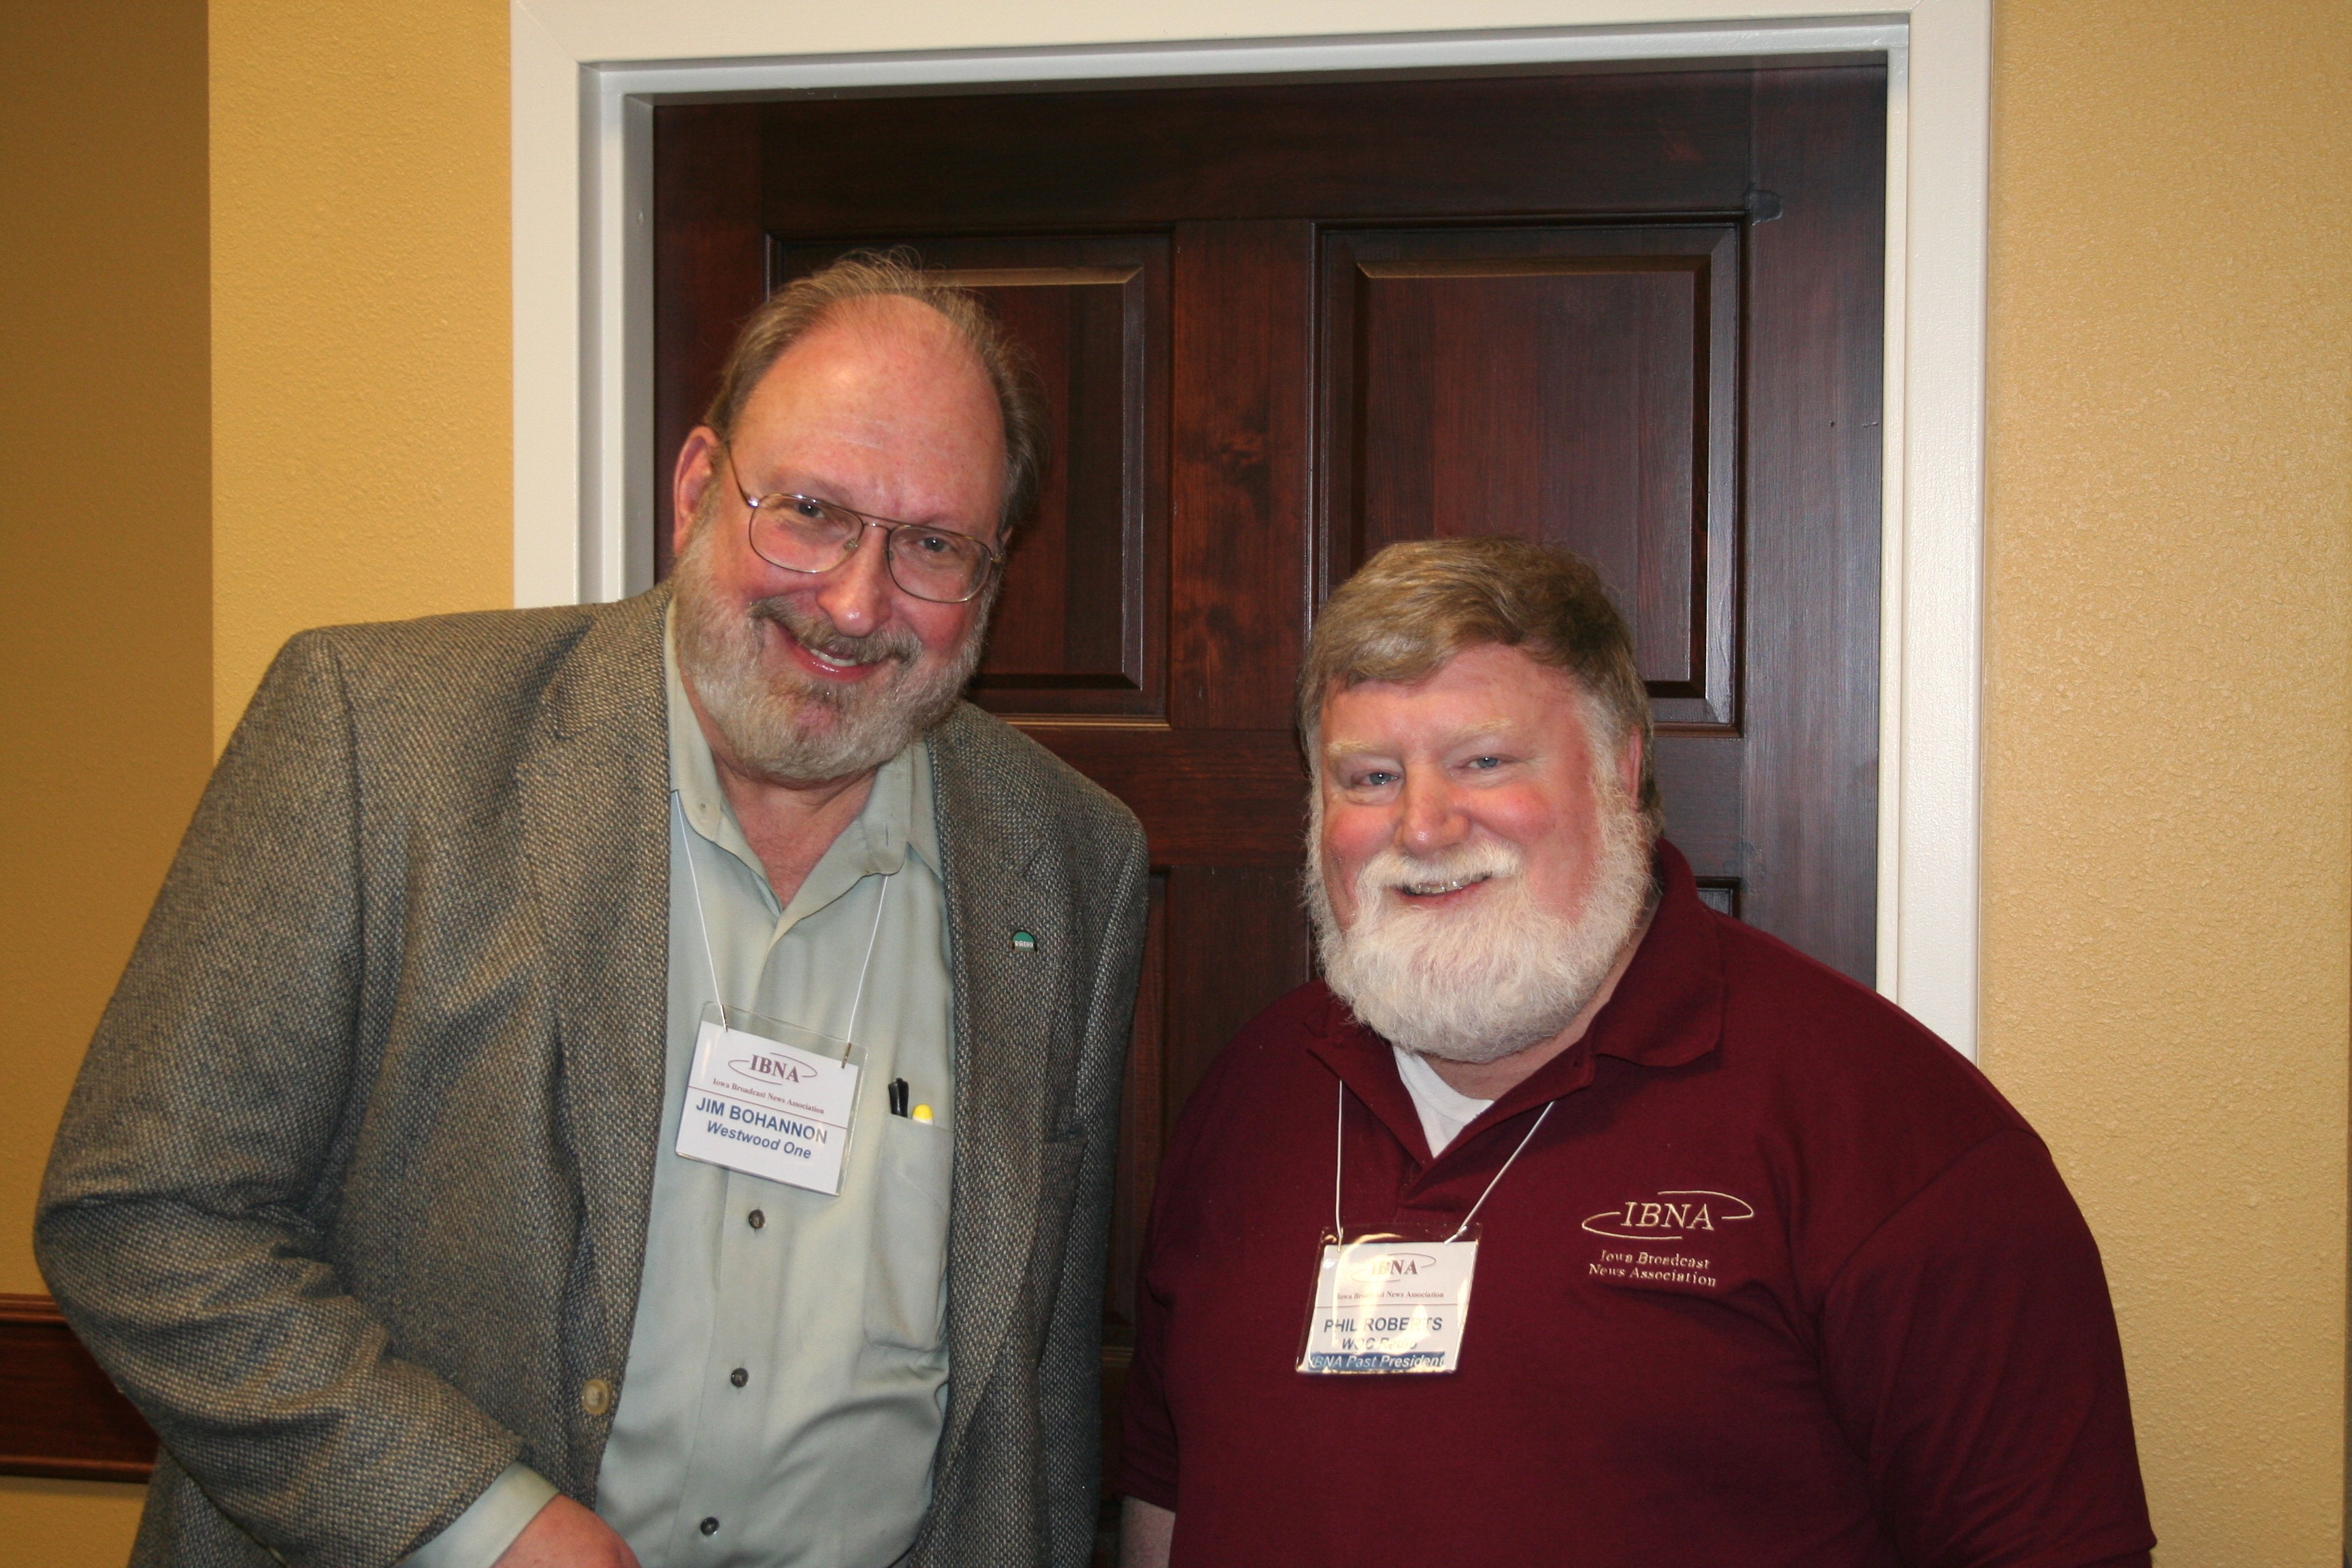 Jim Bohannon, left, a nationally syndicated radio talk show host and a panelist and the keynote speaker atthe 2009 Iowa Broadcast News Association convention inAmes, chats with Phil.